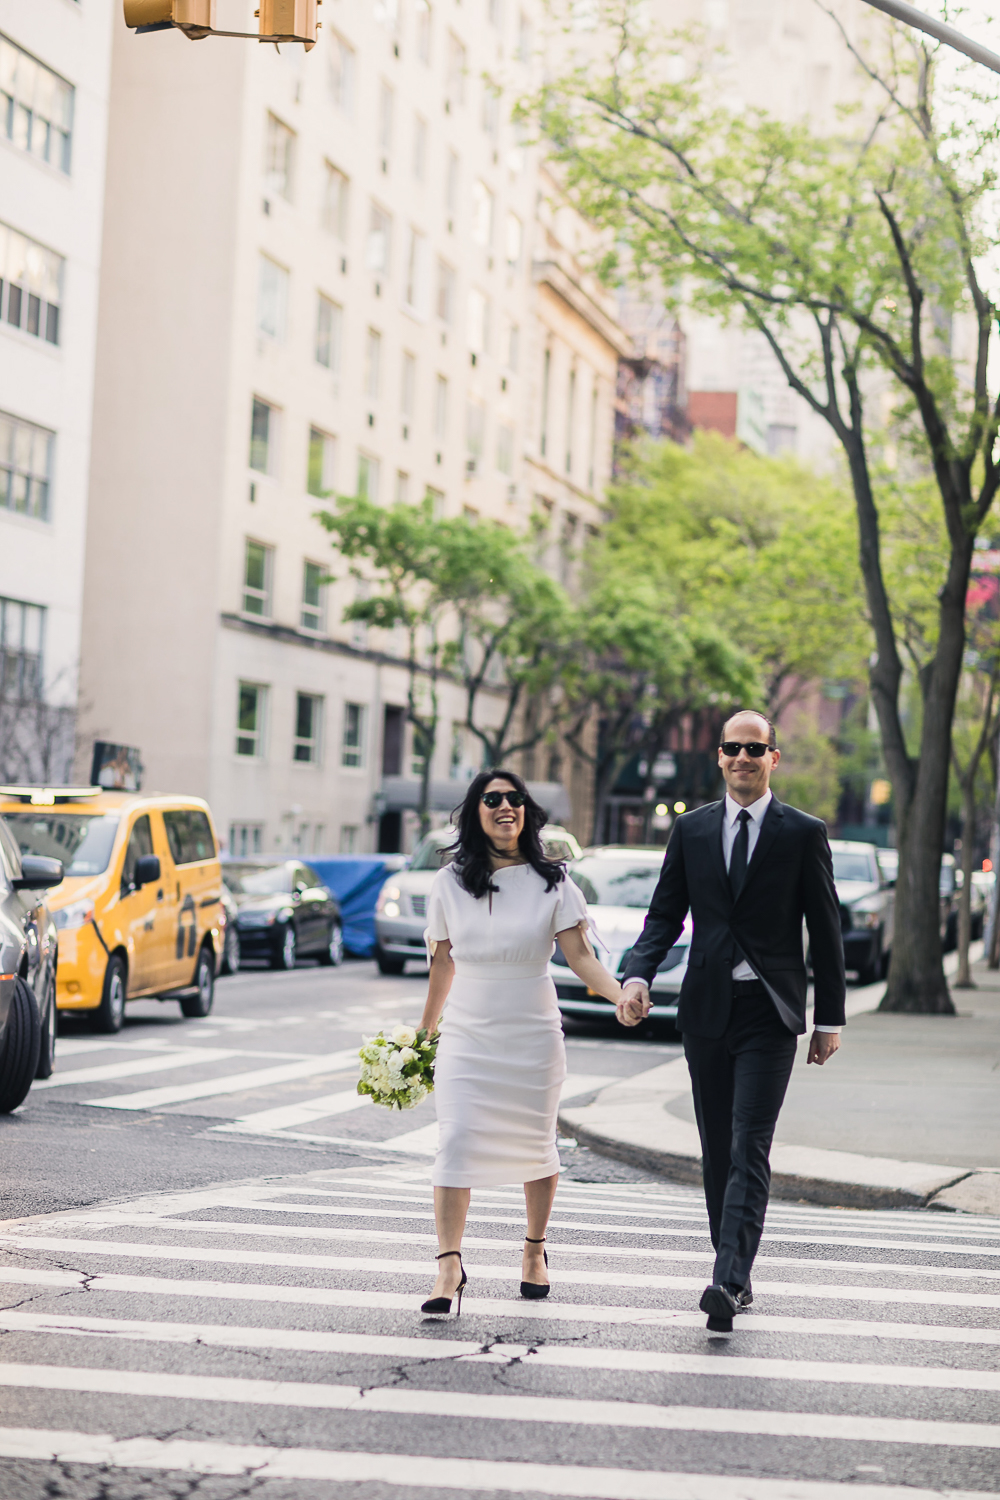 Bride and groom taking wedding photos in Central Park. | Early Morning Sunrise Central Park Elopement in New York City.